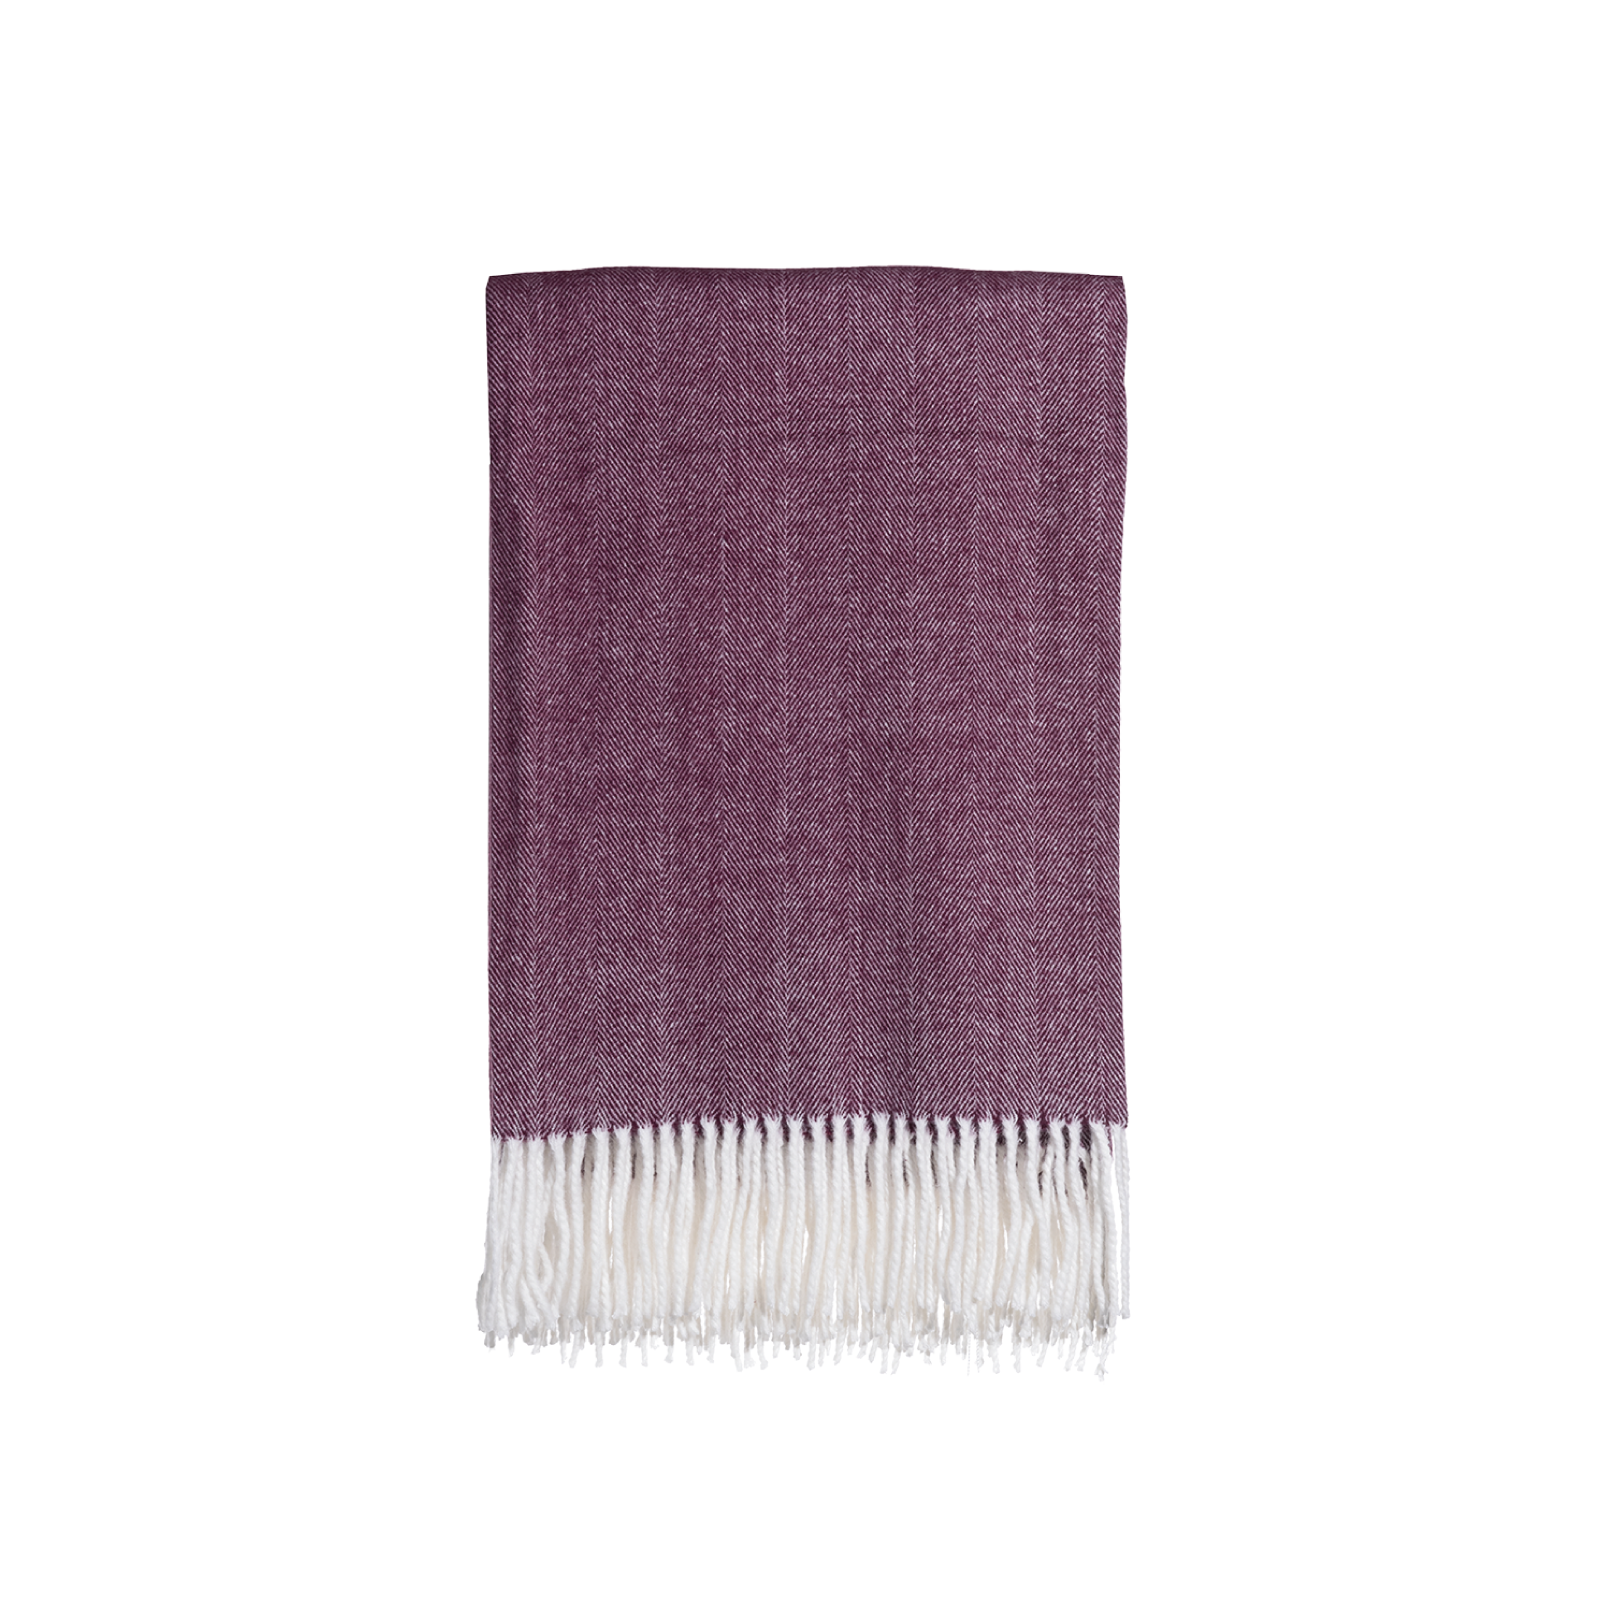 Gemma Throw in Pomegranate Herringbone no. 1